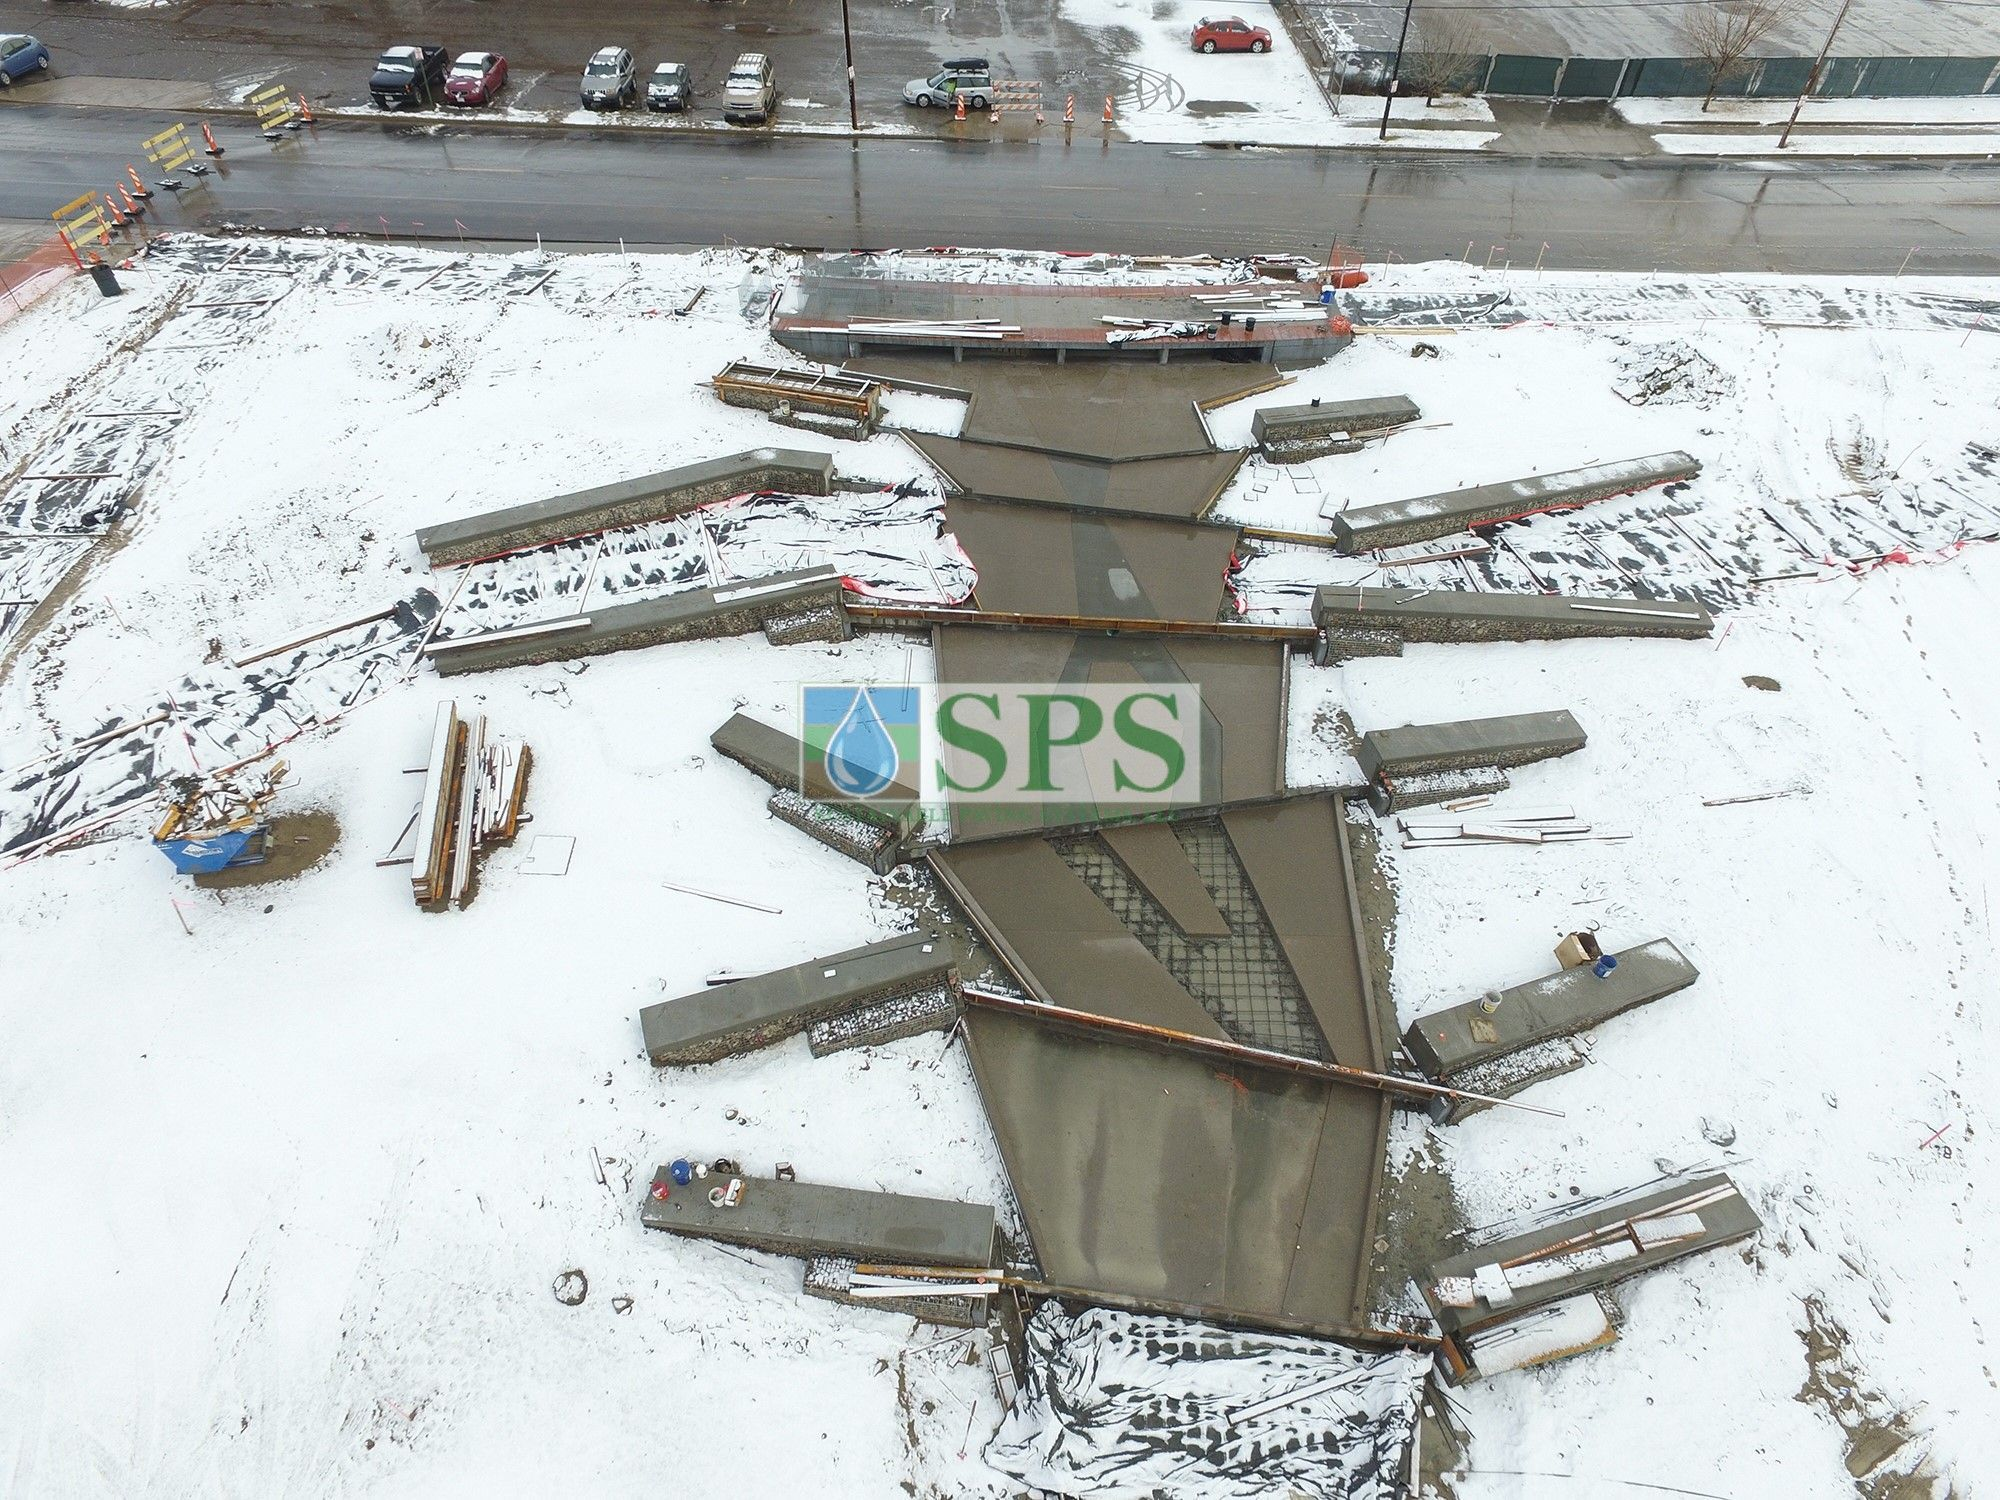 Overhead view of gabion tiered drop structure detention pond located in Denver, CO that was planted with varying grasses for greenspace and stormwater management using Sustainable Paving Systems Partial Grasscrete System installation of a pervious monolithic cast-in-place concrete.